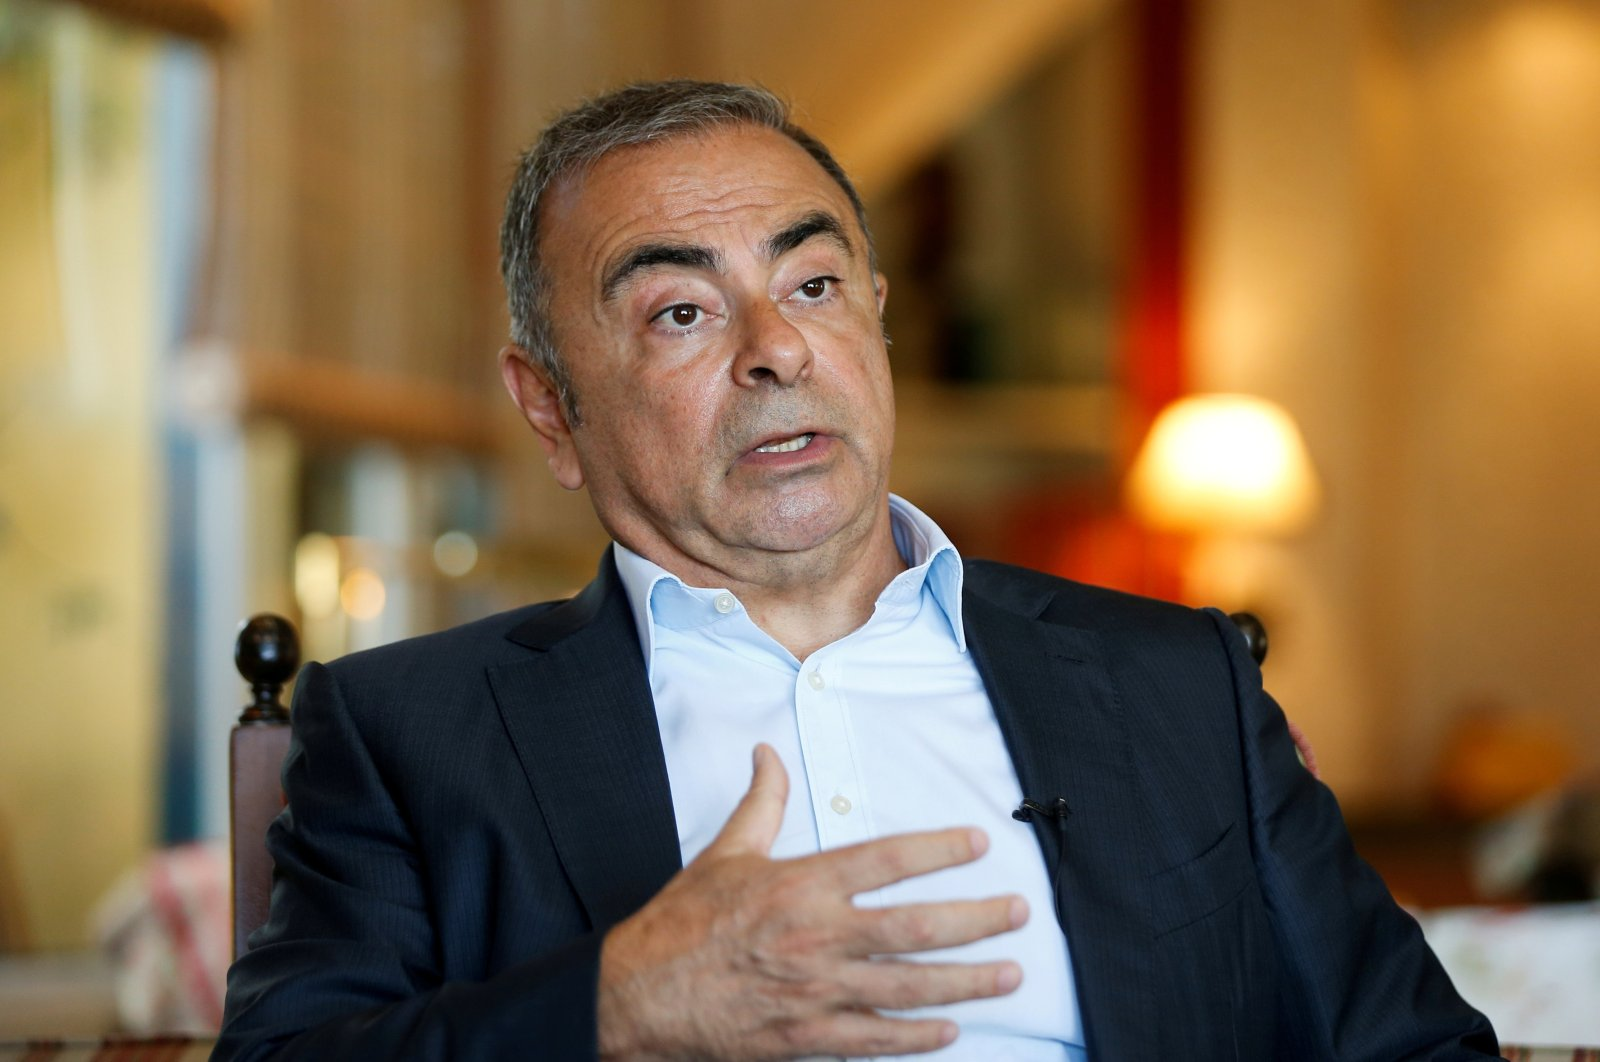 Former Nissan Chairperson Carlos Ghosn talks during an interview in Beirut, Lebanon, June 14, 2021. (Reuters Photo)